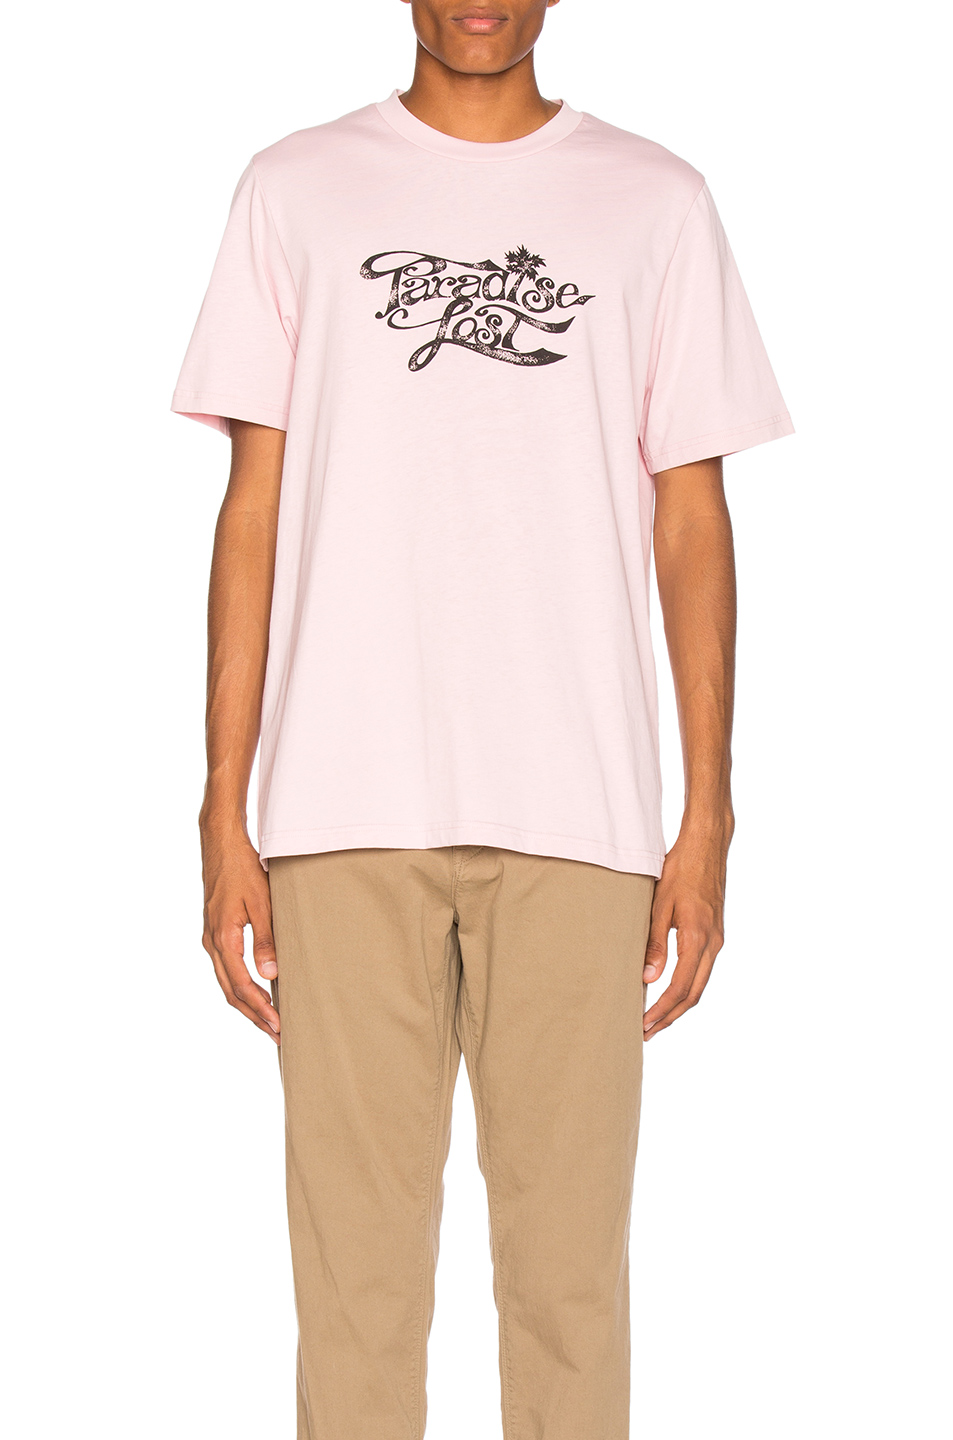 OAMC Paradise Lost Tee in Pink